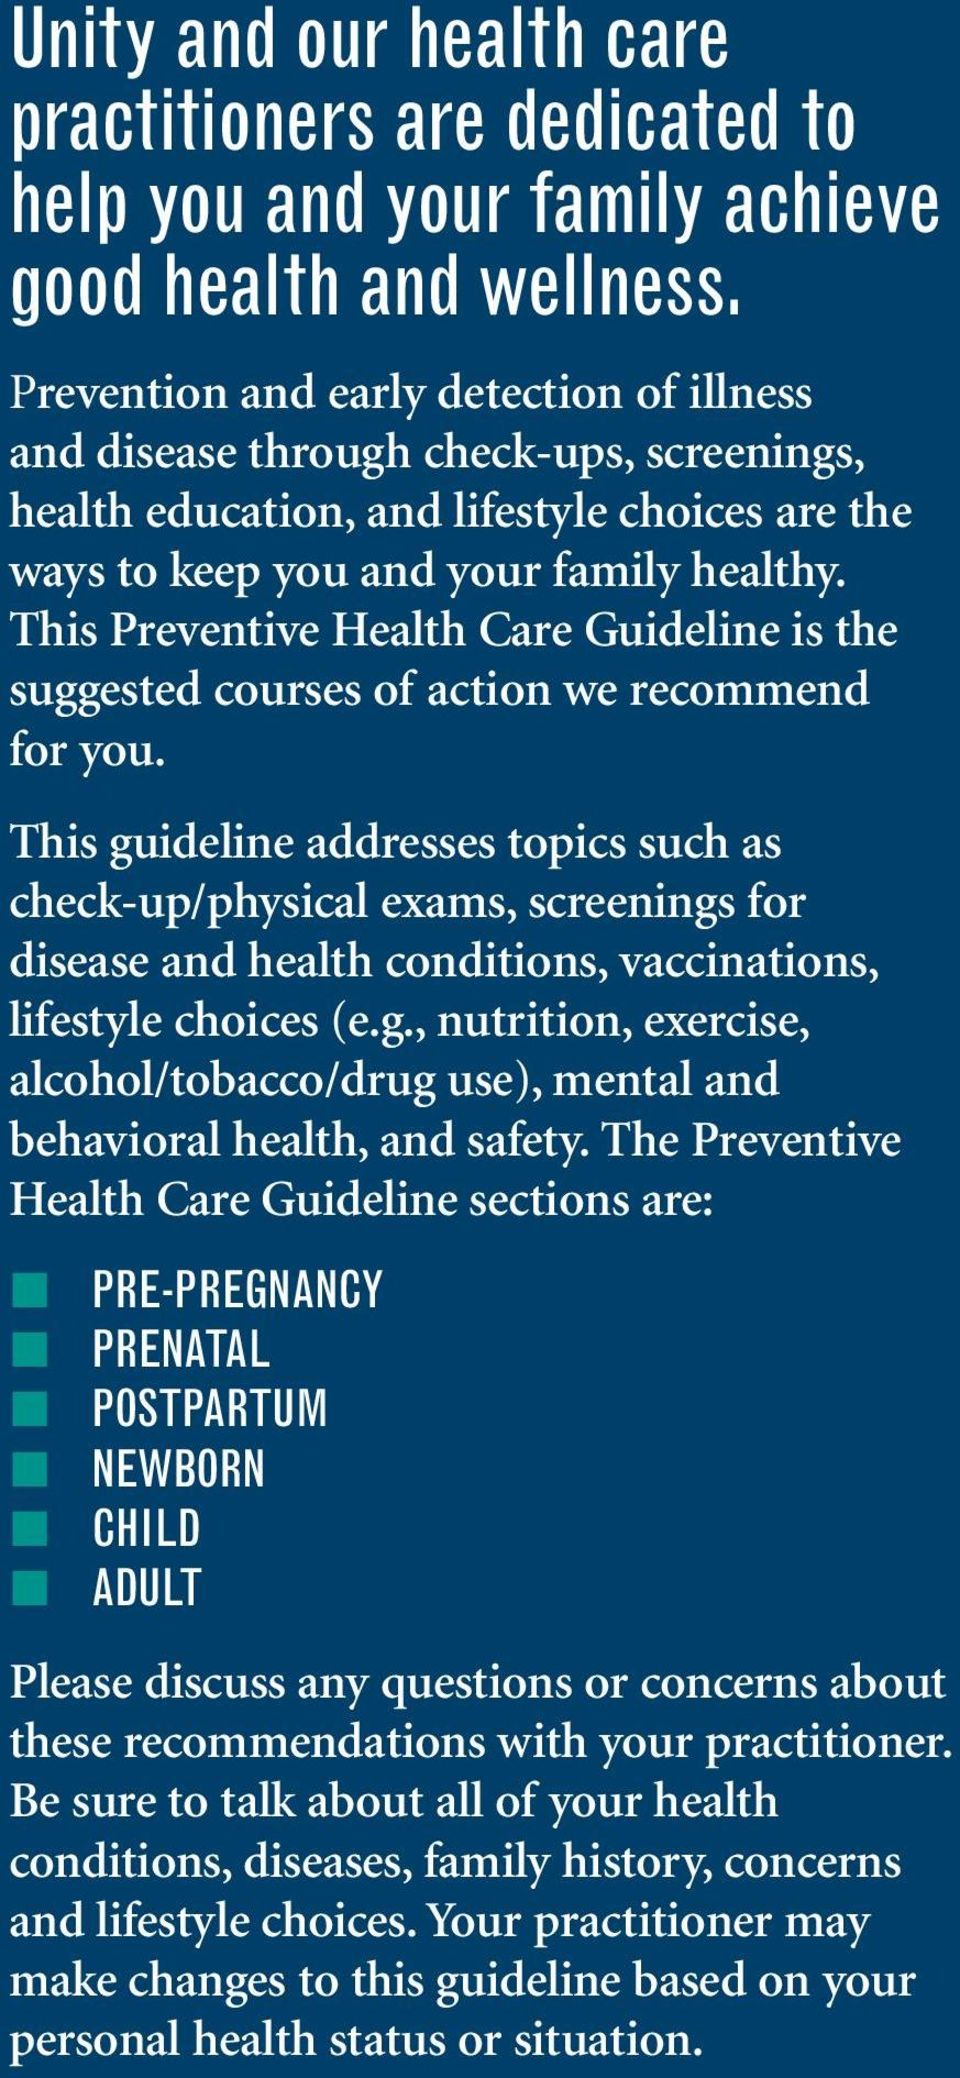 This Preventive Health Care Guideline is the suggested courses of action we recommend for you.